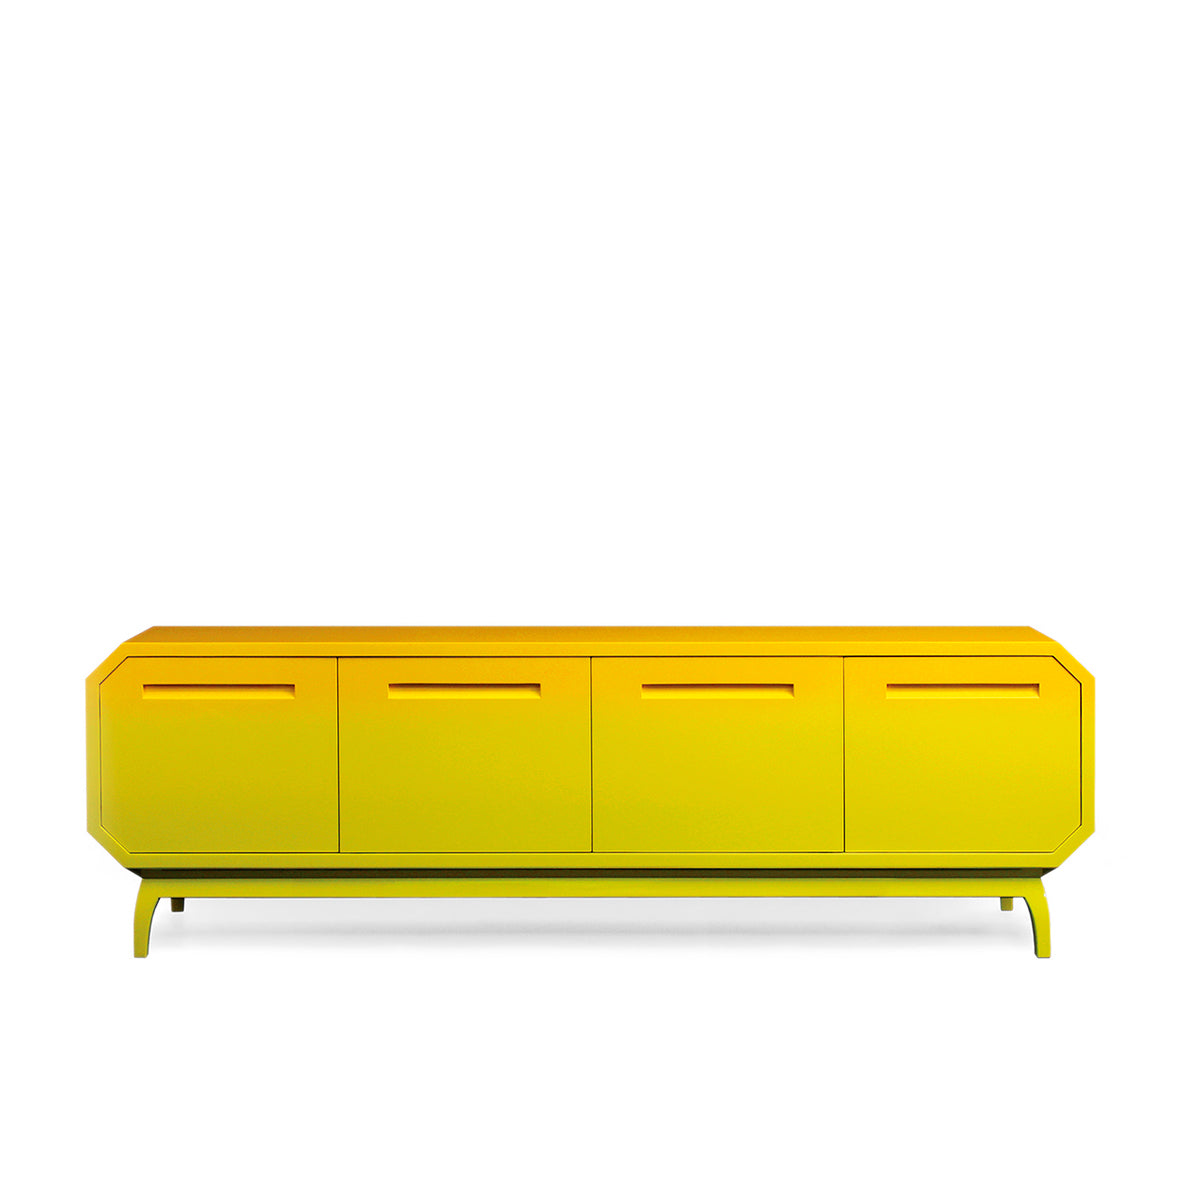 Mirtillo Luxurious Yellow Sideboard